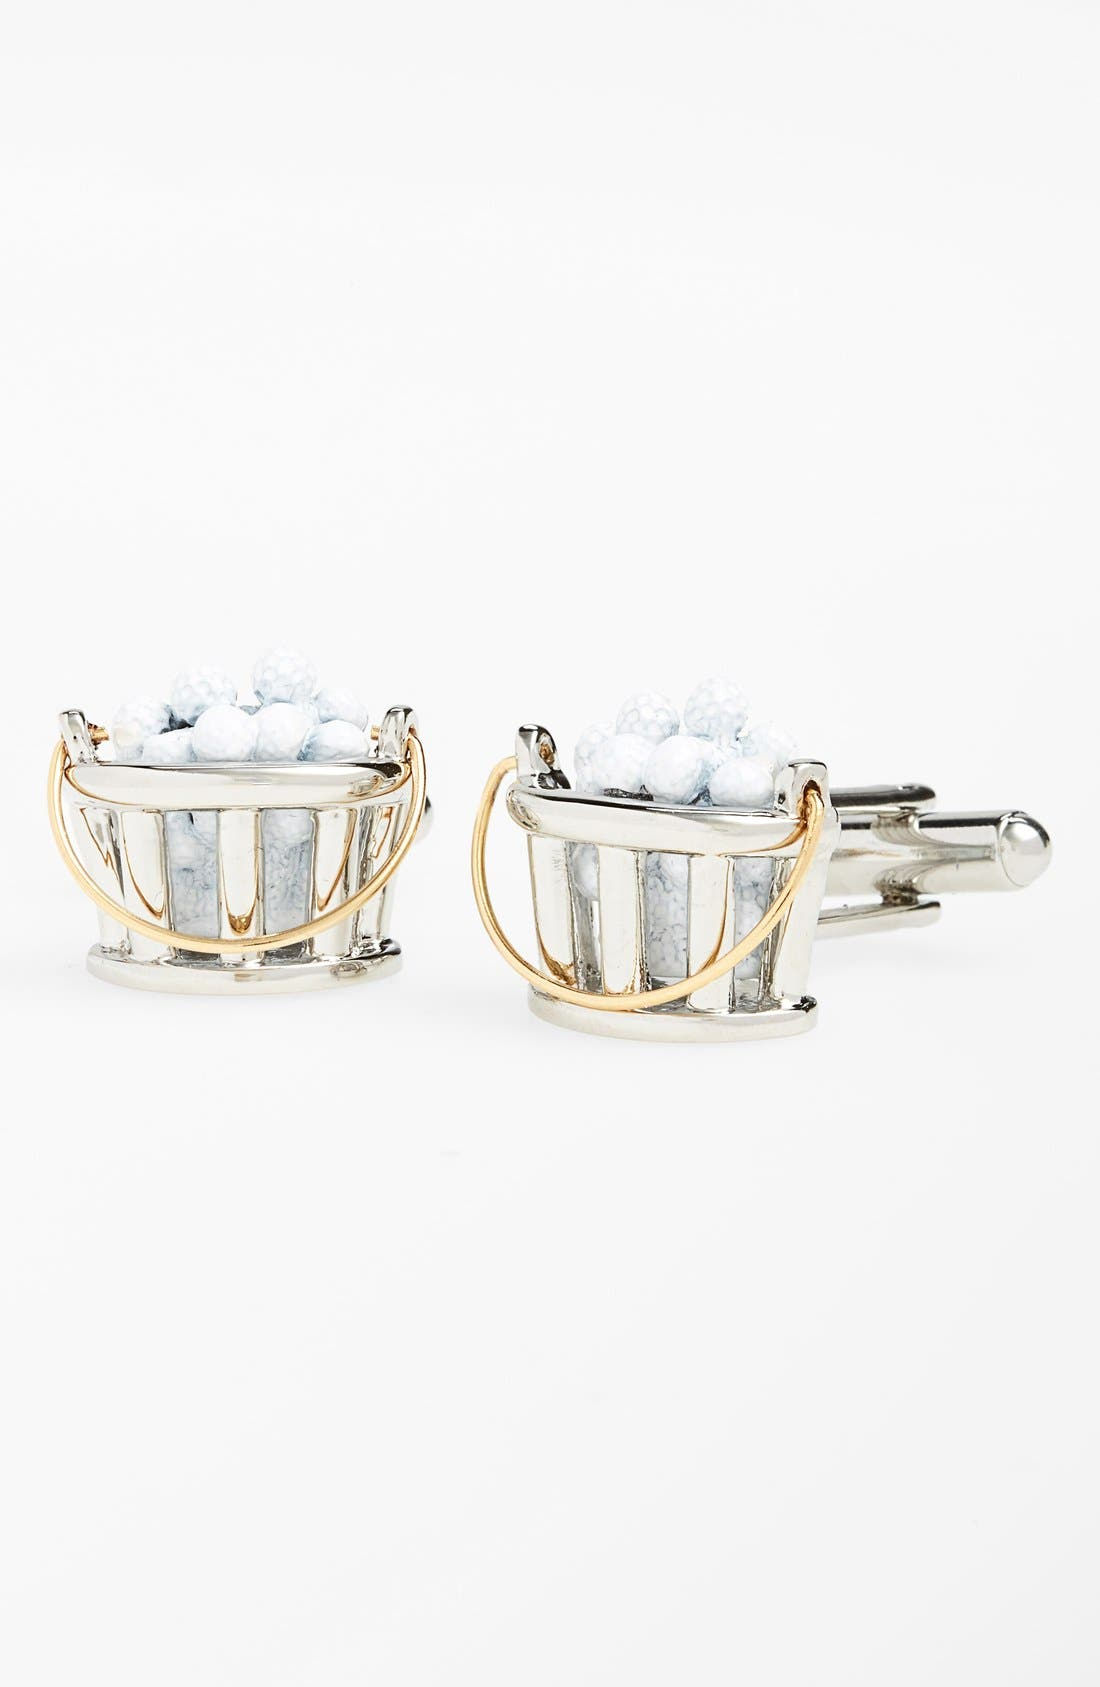 Alternate Image 1 Selected - LINK UP 'Bucket of Balls' Cuff Links